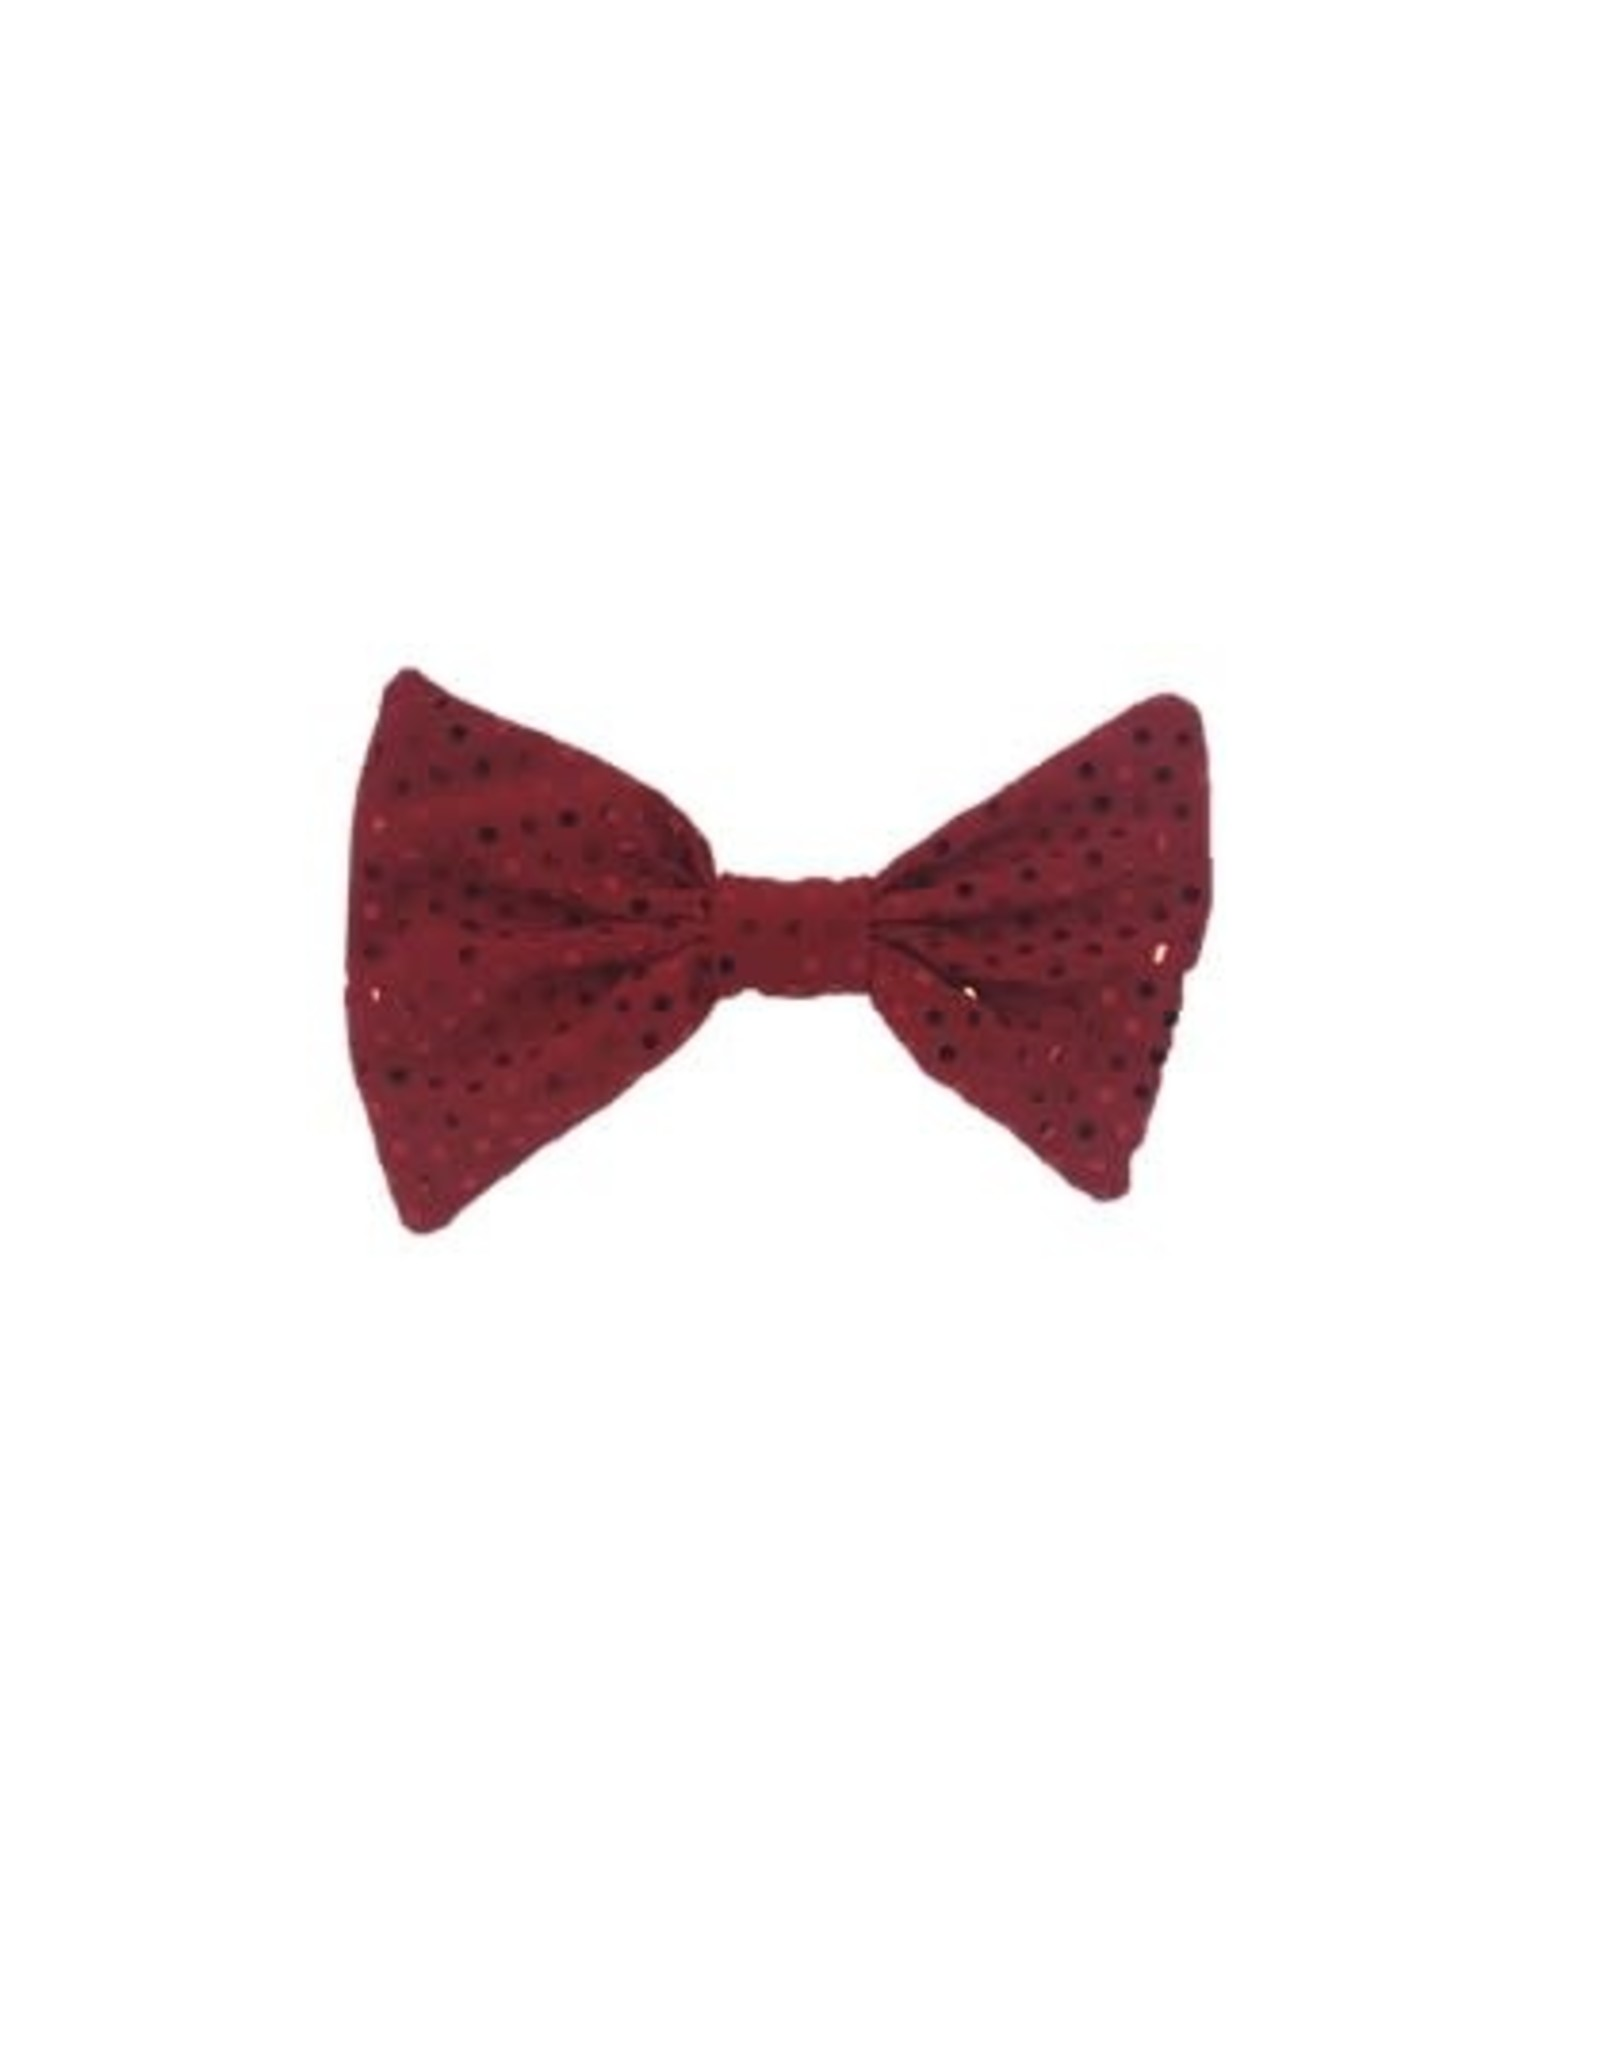 Karries Kostumes Handmade Sparkly Red Bow Tie